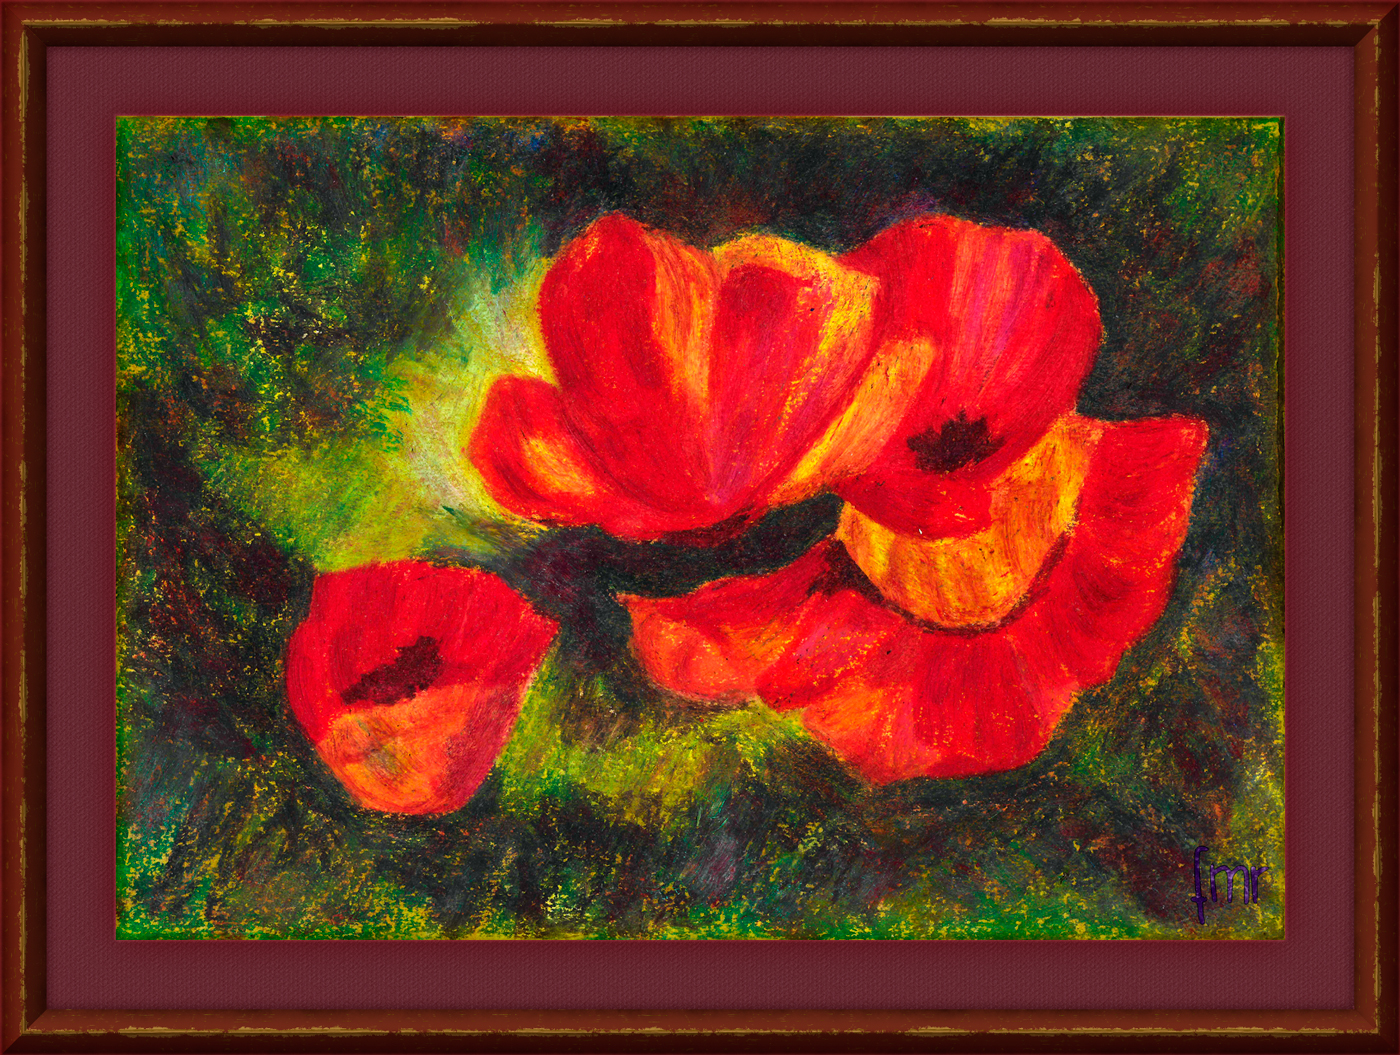 Poppies by Saltwater